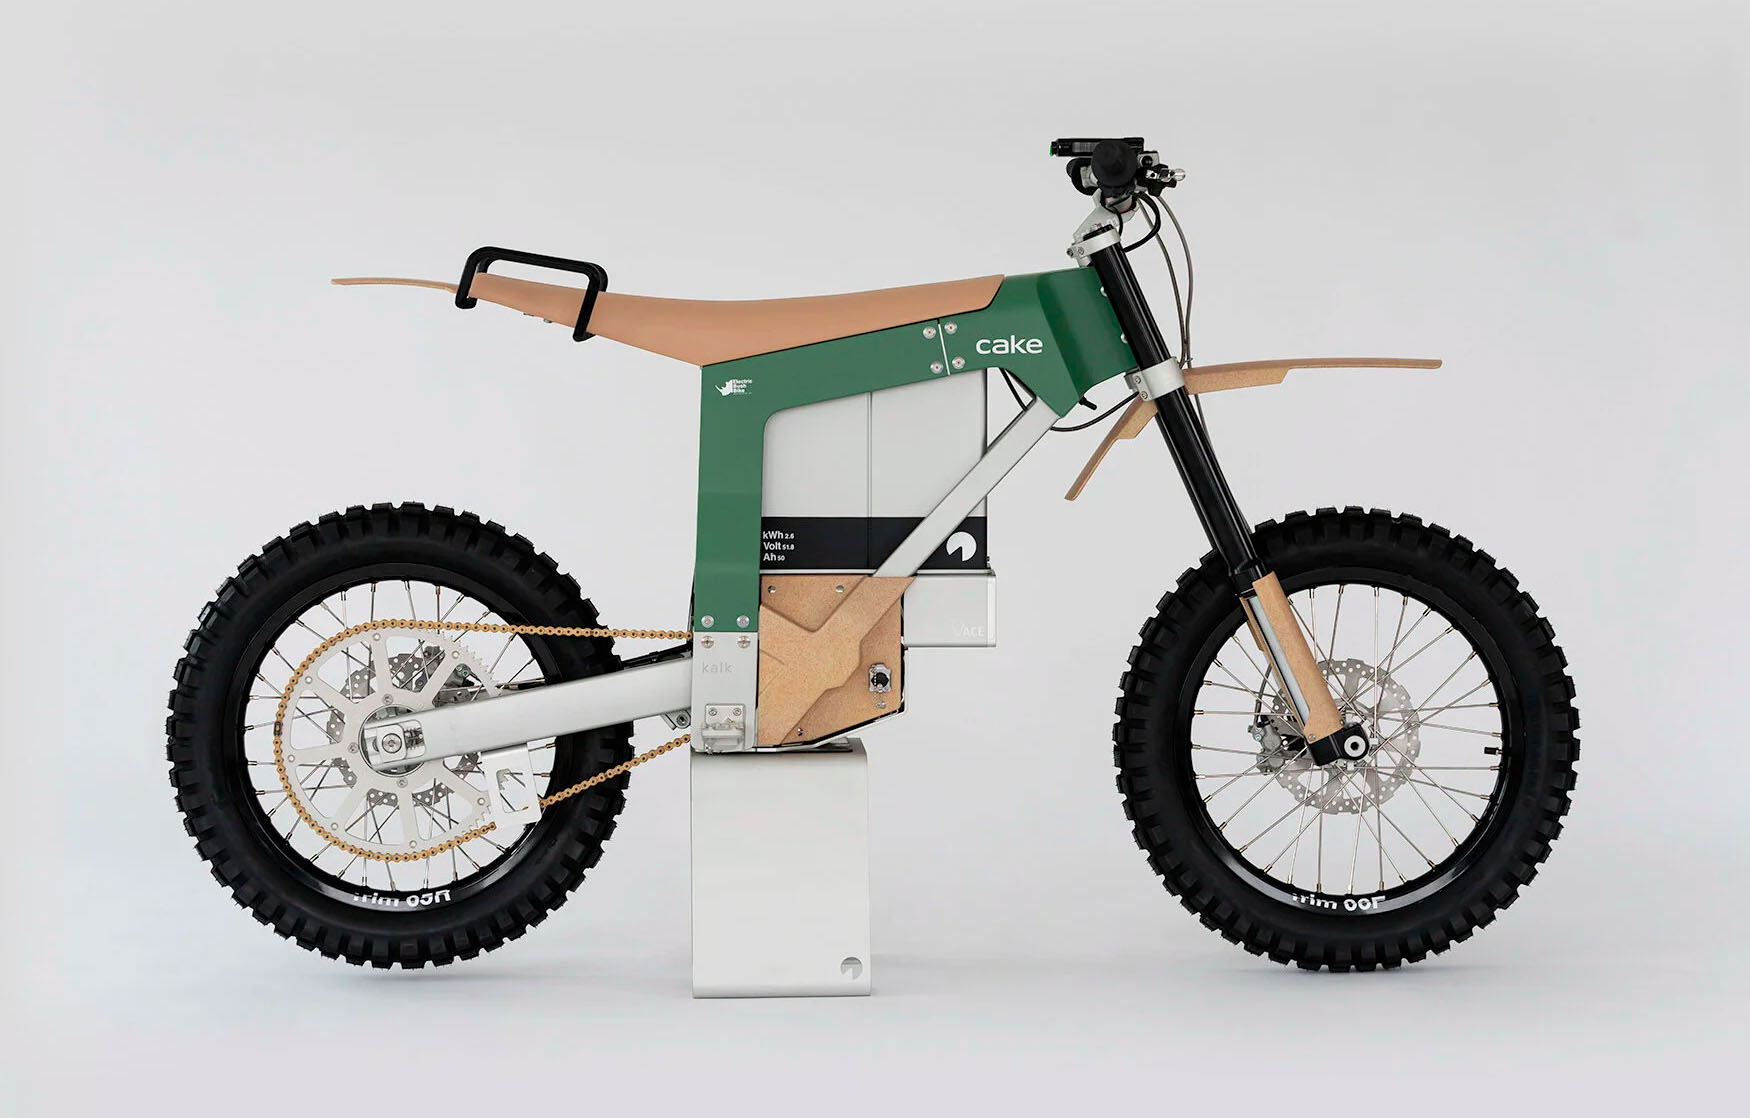 This ultra-quiet electric bike is a poacher's worst nightmare